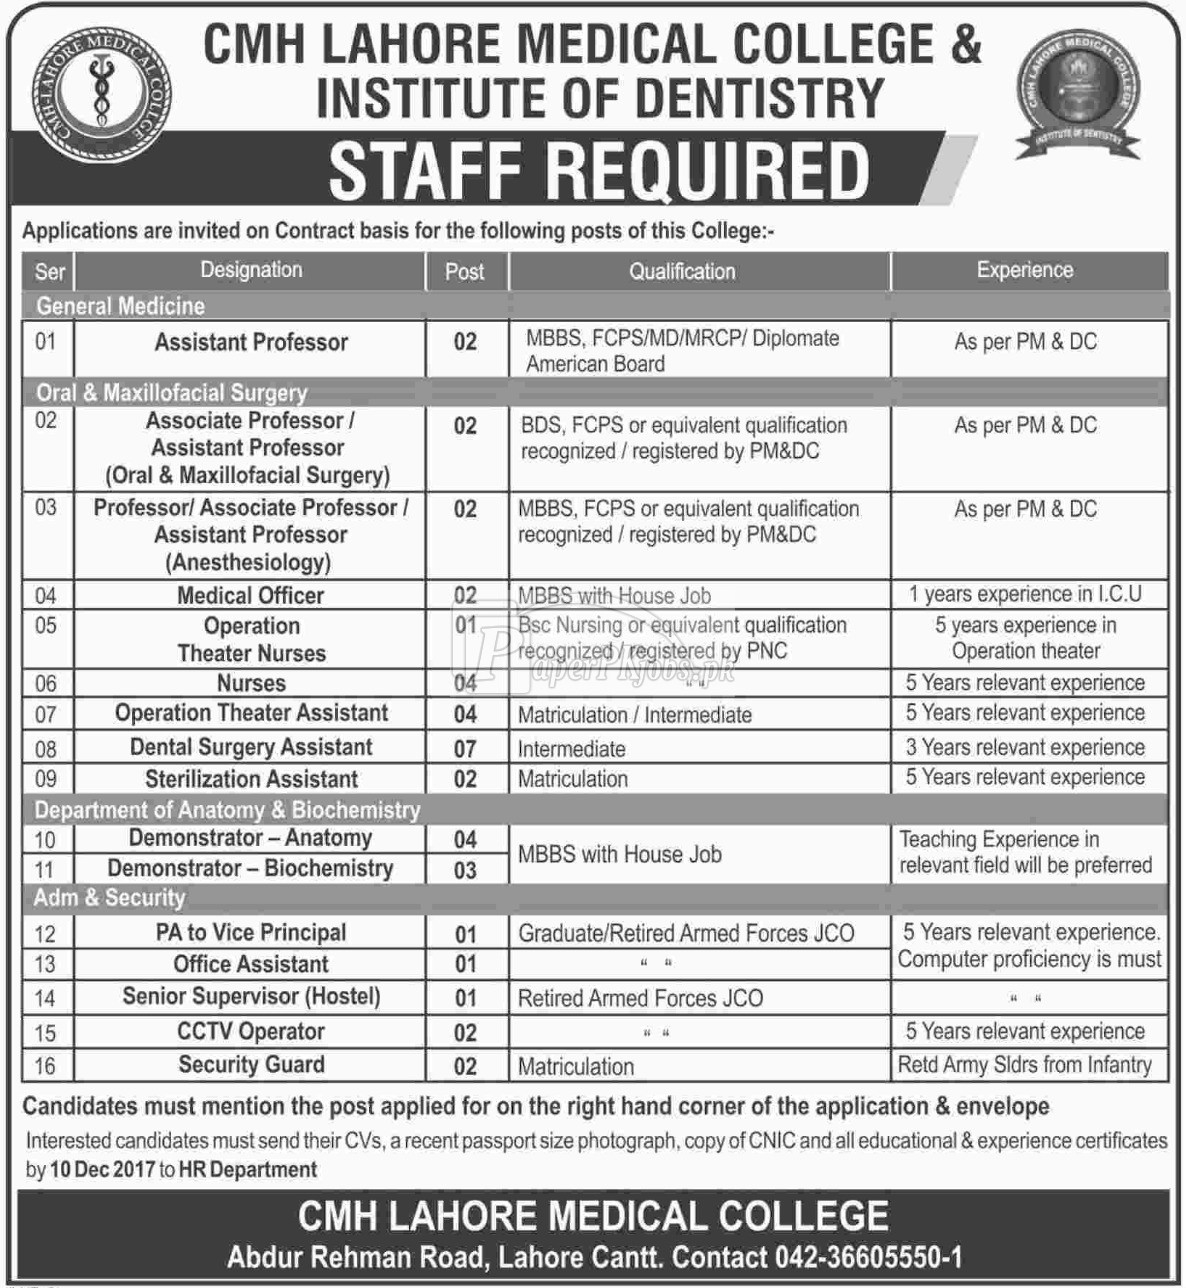 CMH Lahore Medical College & Institute of Dentistry Jobs 2017